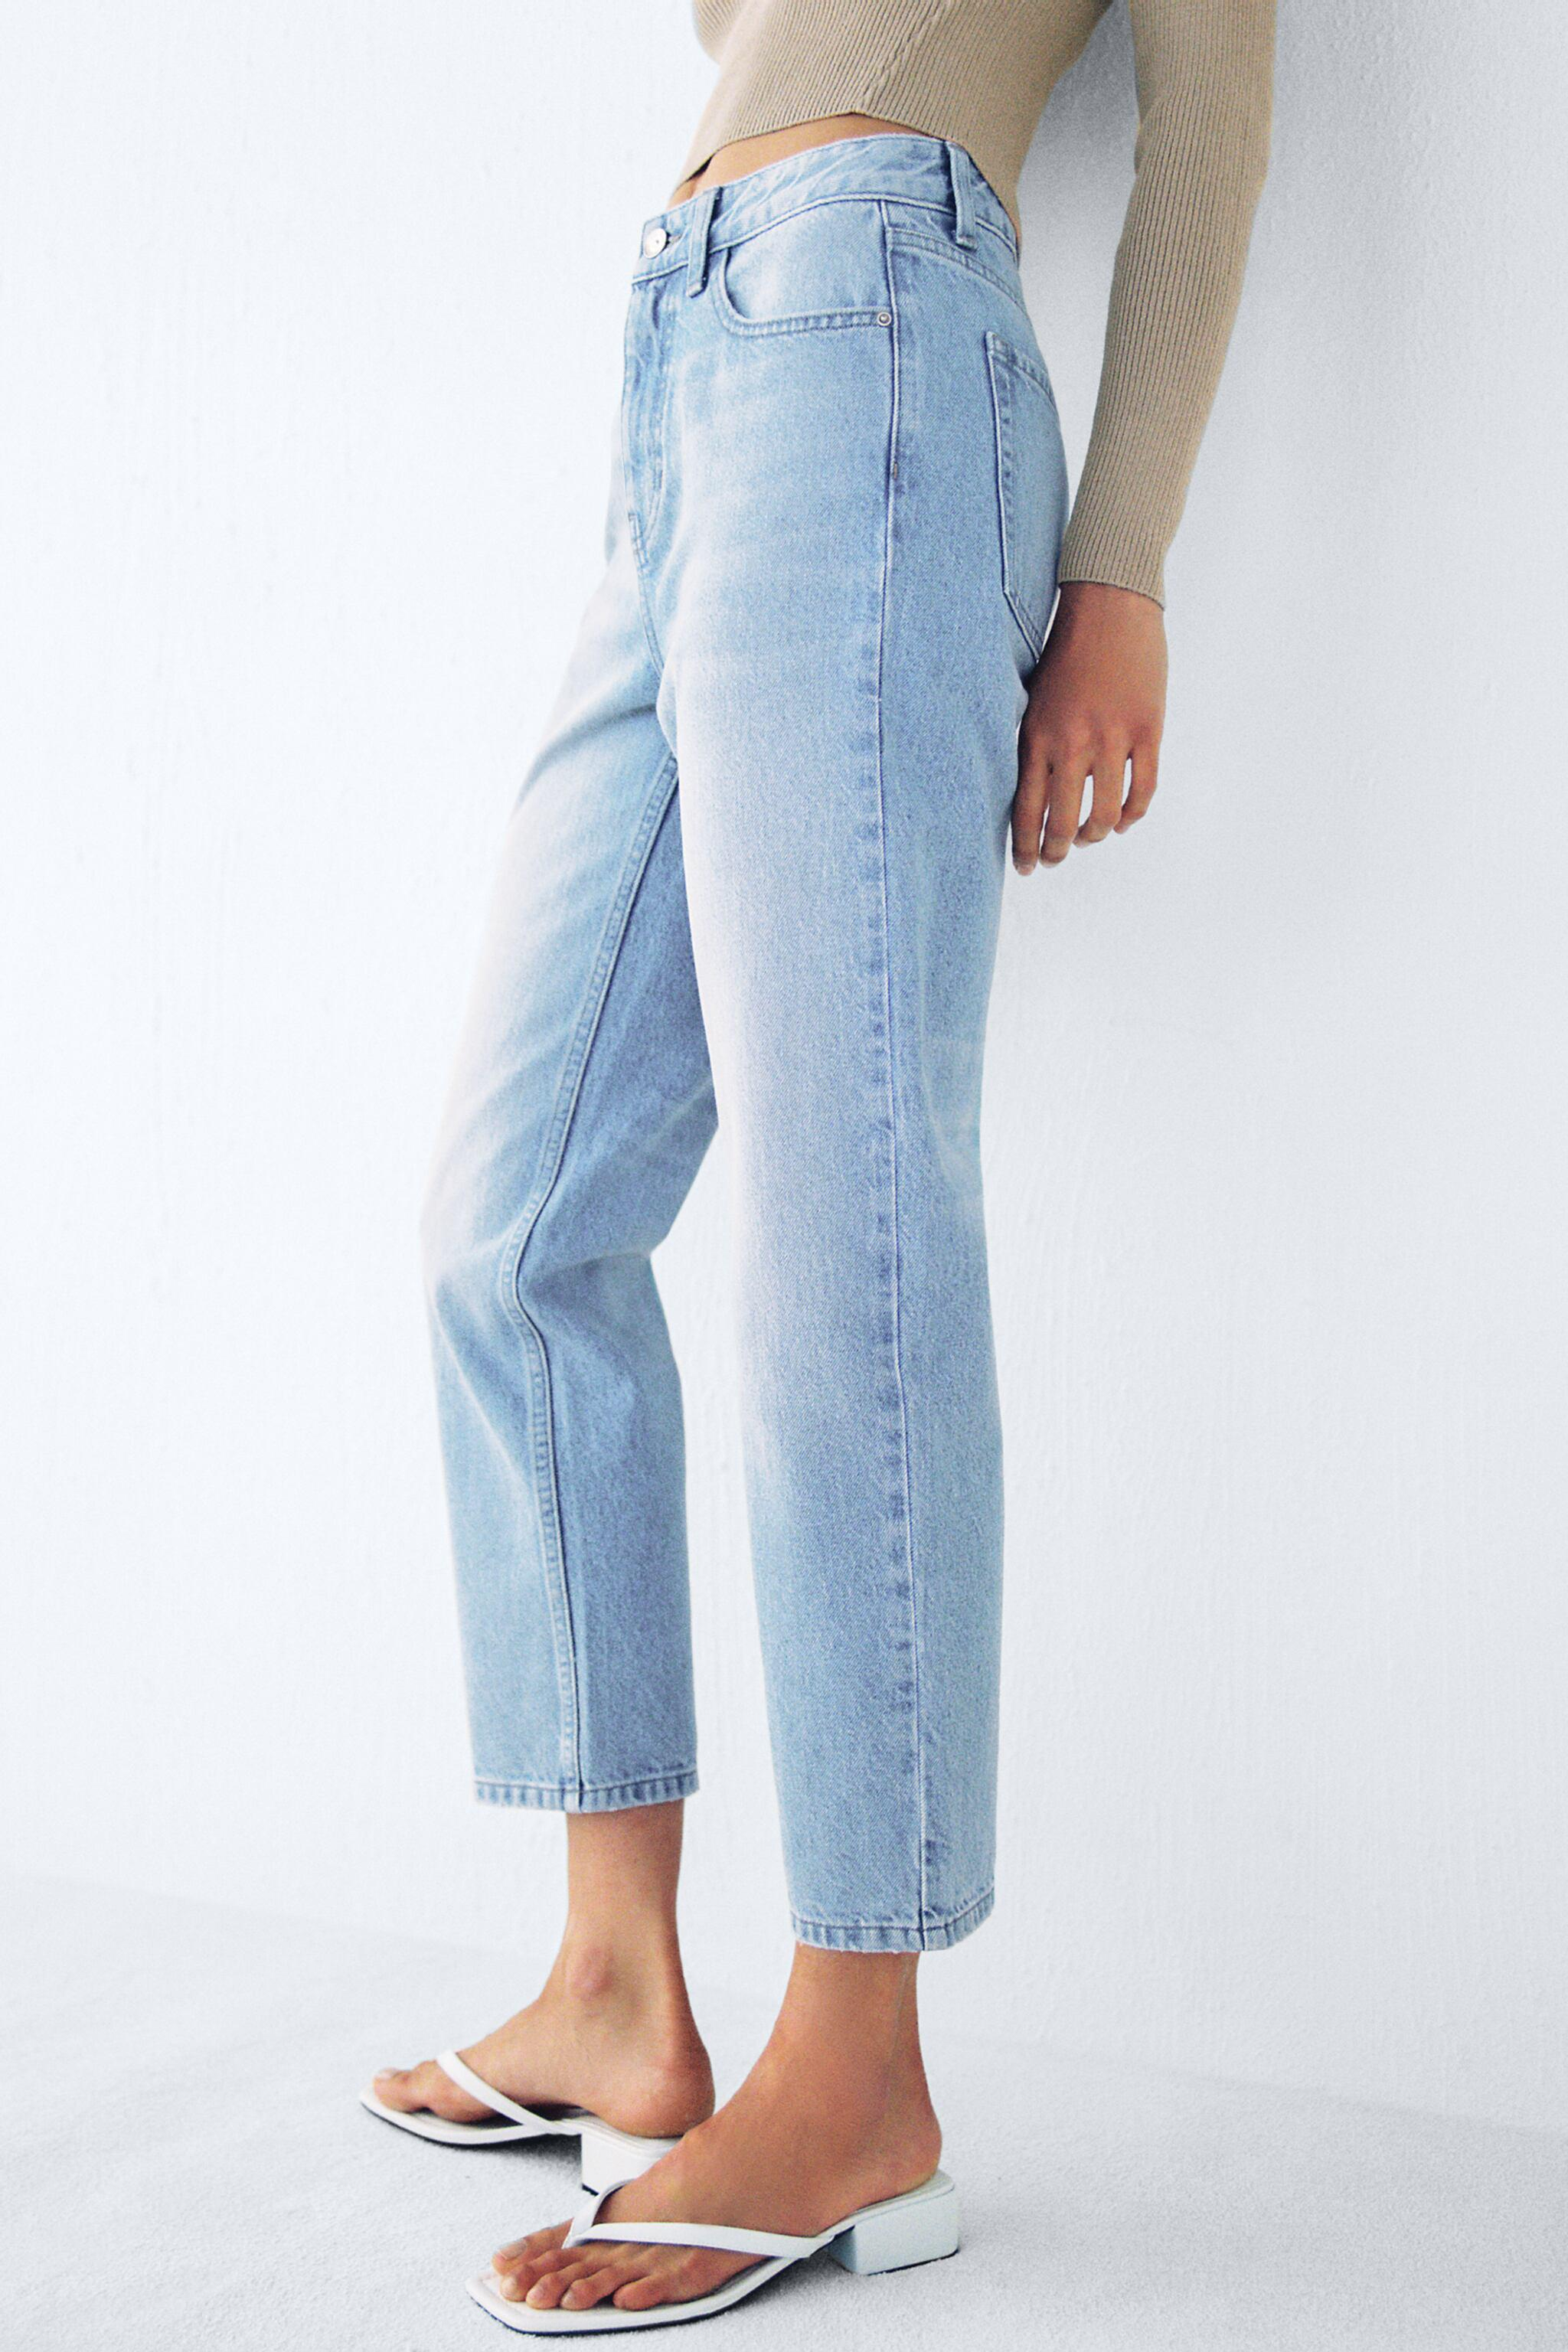 Z1975 HIGH RISE TAPERED JEANS 3